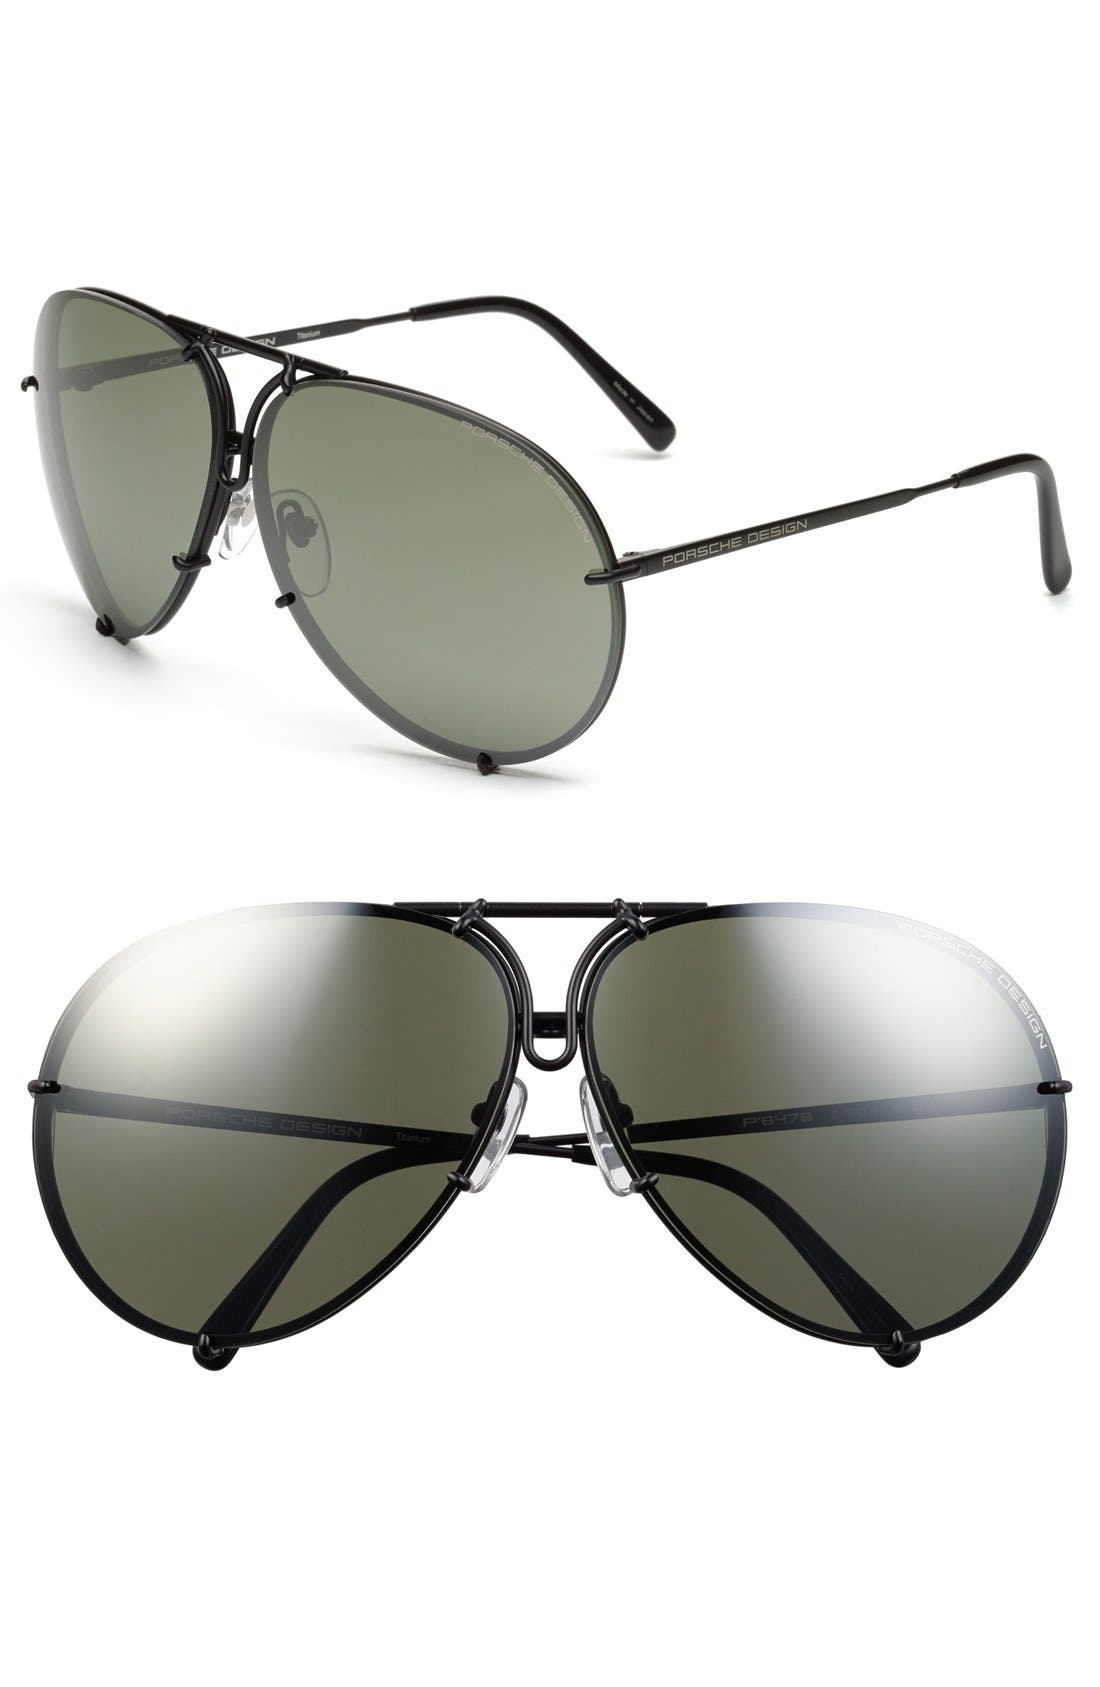 Porsche Design P8478 69mm Aviator Sunglasses Nordstrom